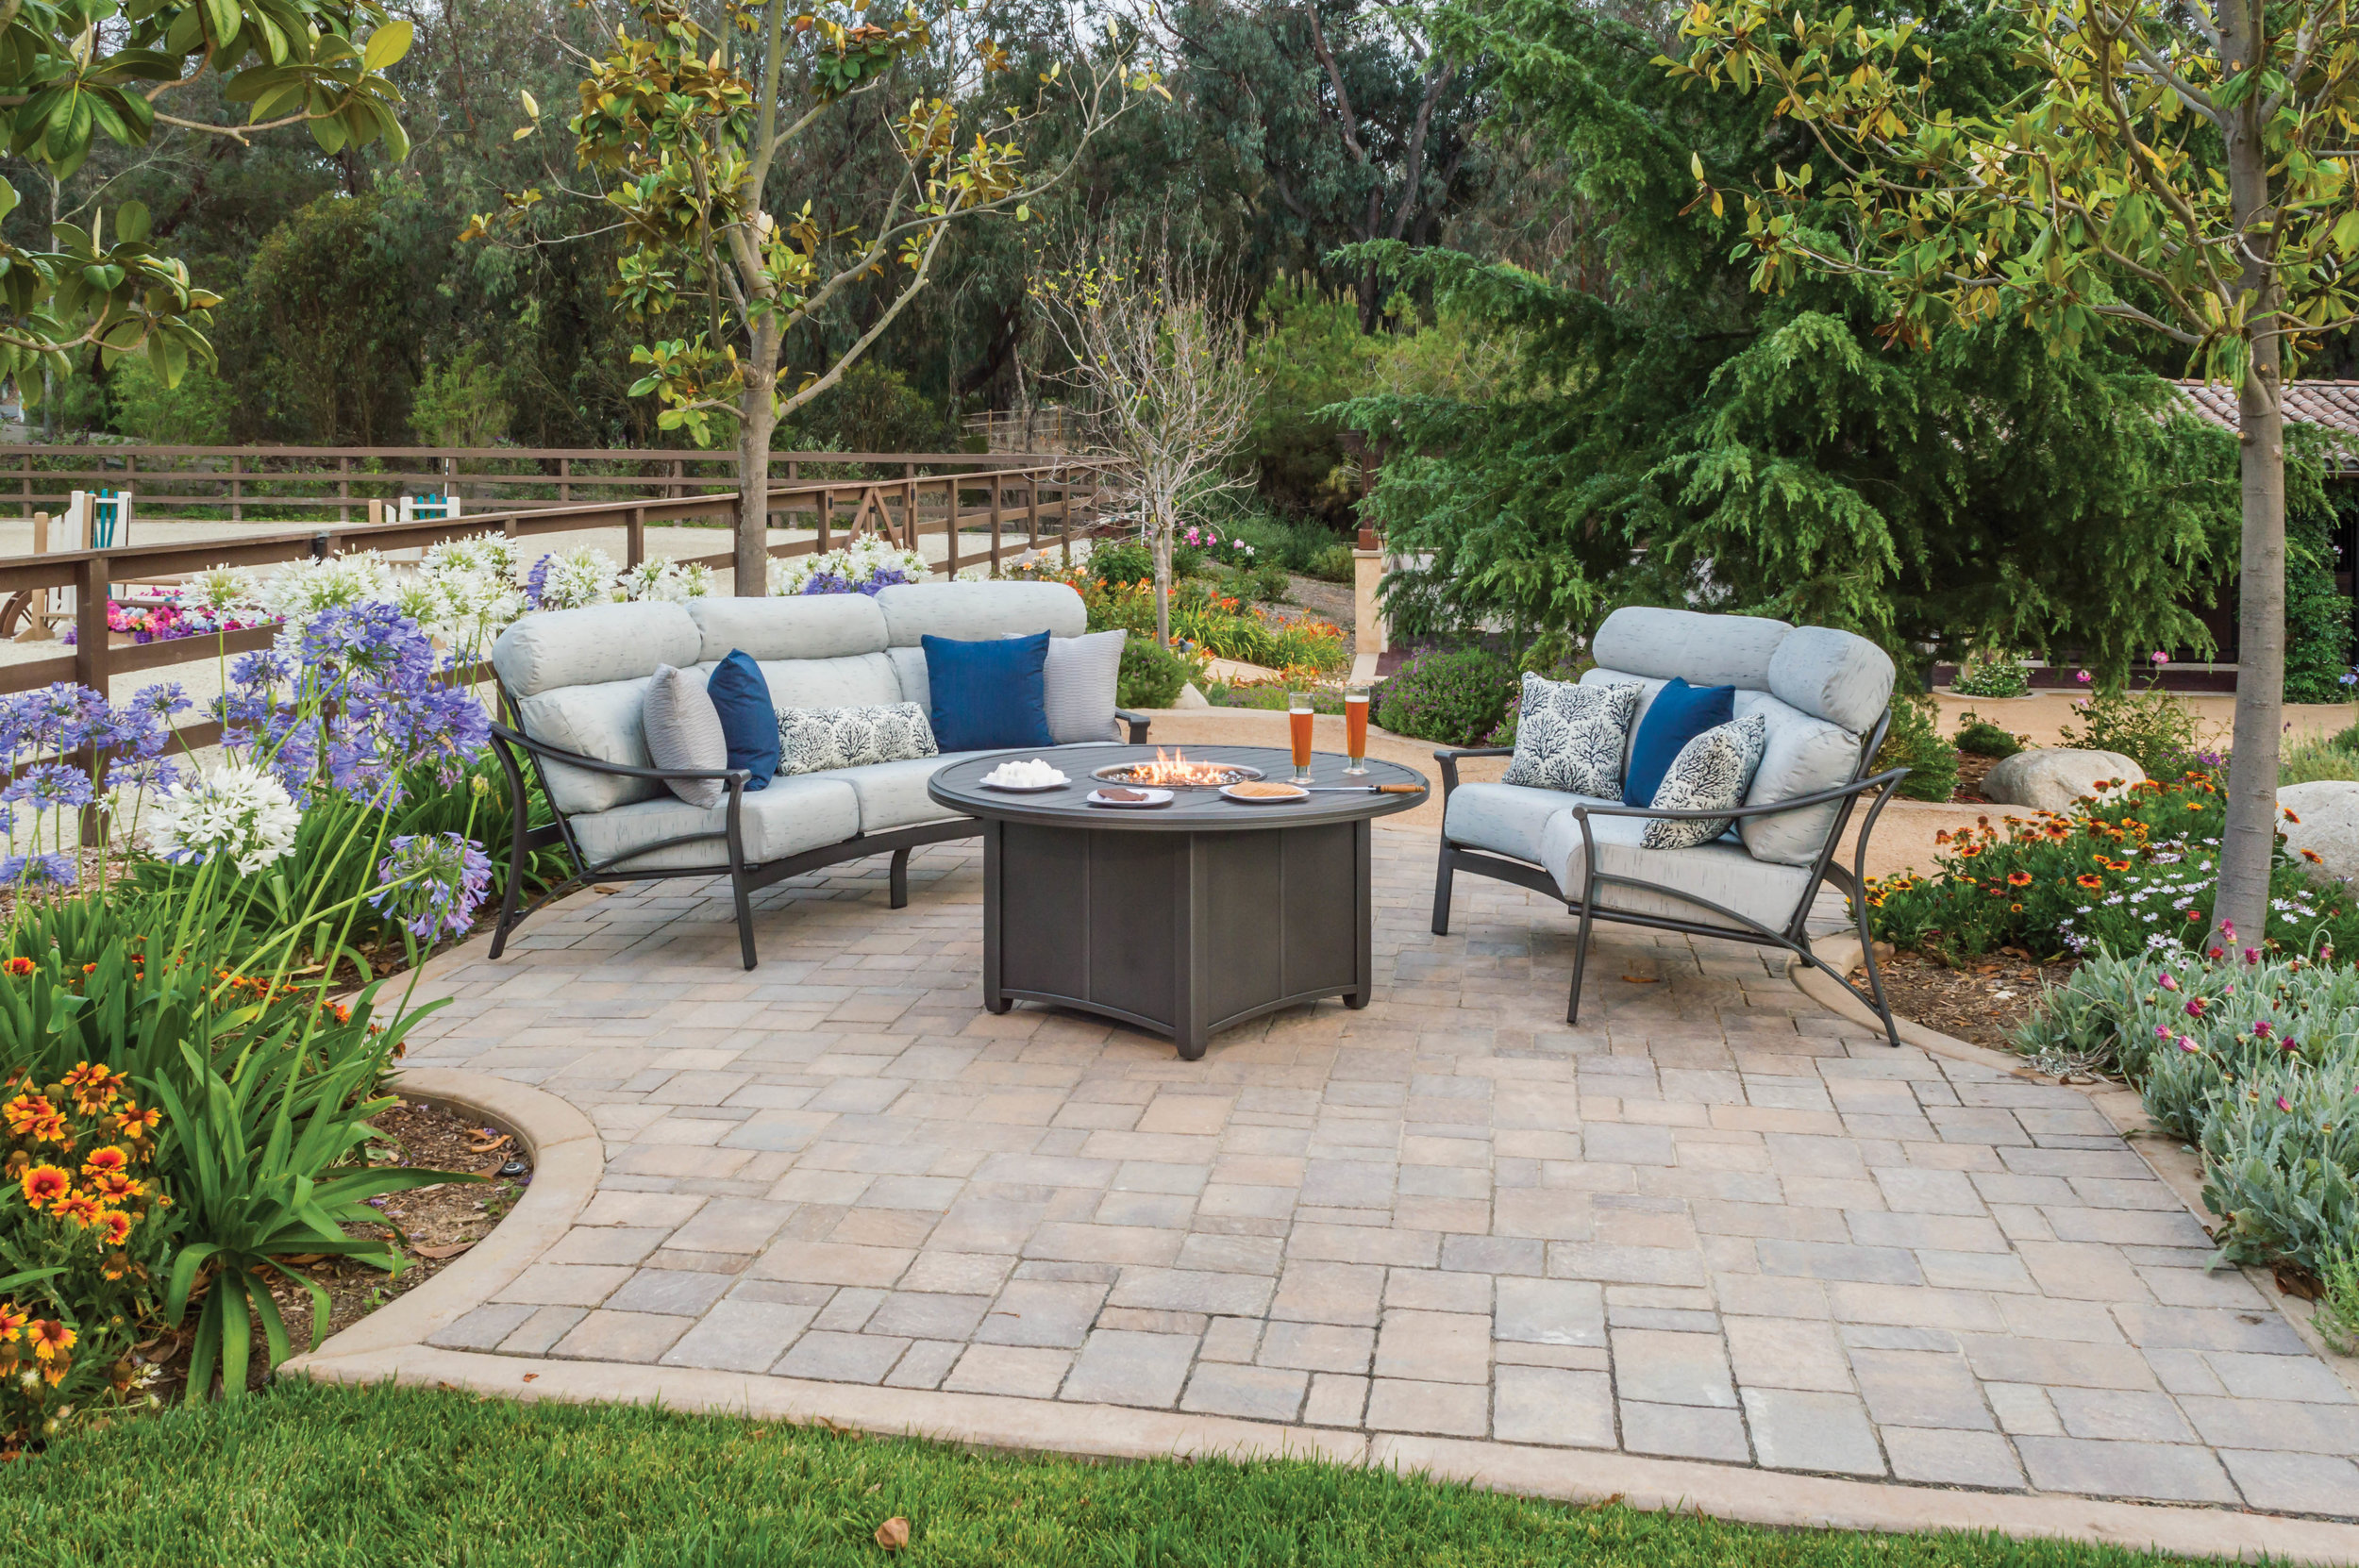 Corsica cushion sofa and loveseat with powder coated aluminum frame and propane cast aluminum firepit. The ultimate in outdoor casual enteraining and dining.